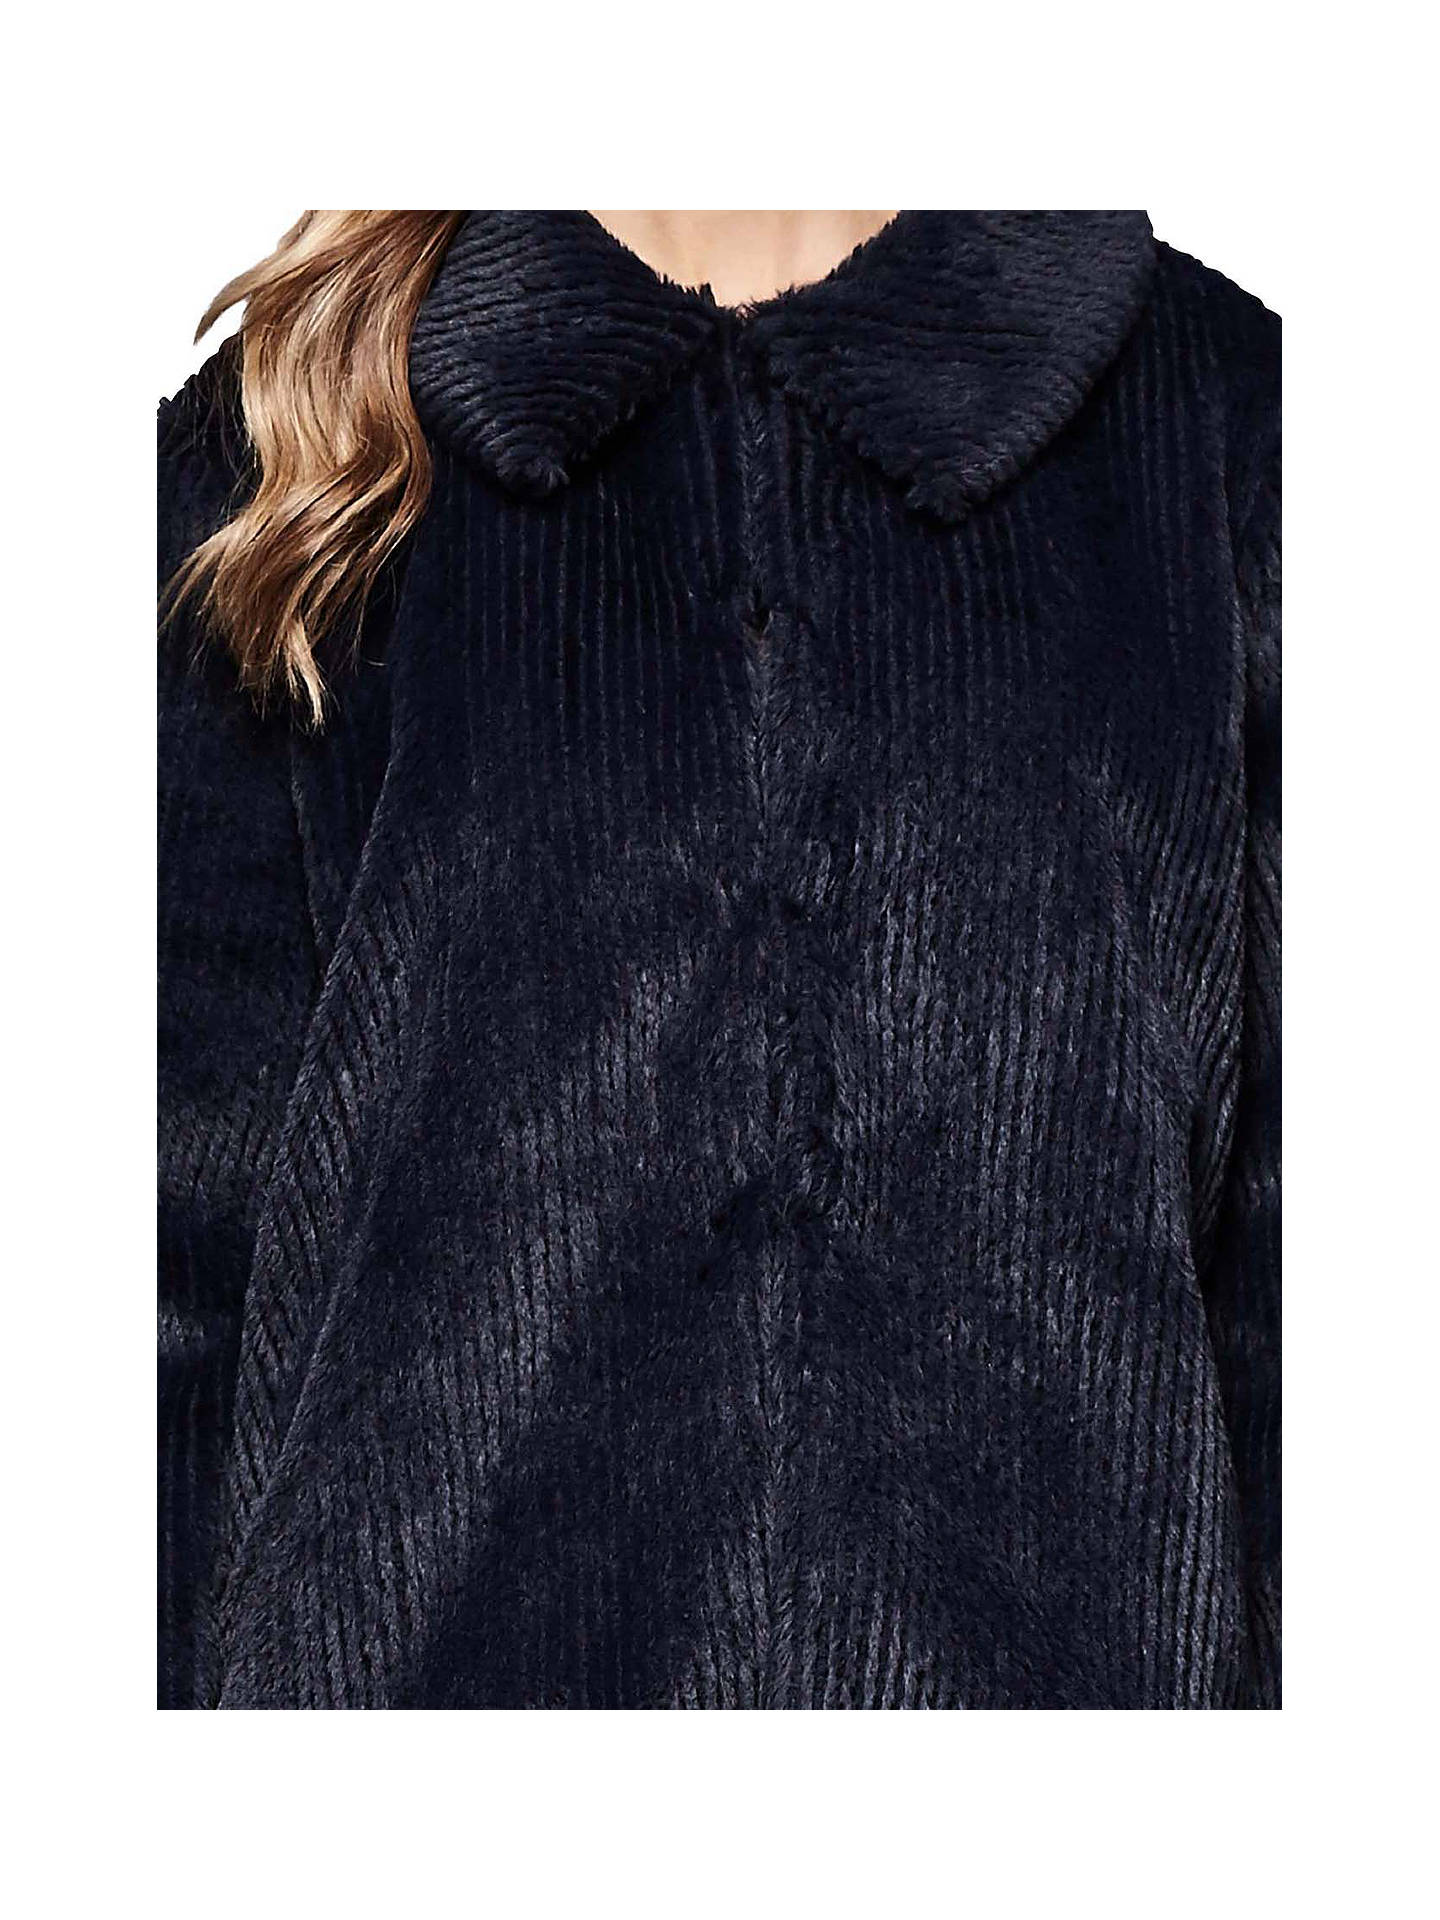 BuyYumi Faux Fur Stripe Jacket, Dark Navy, 8 Online at johnlewis.com